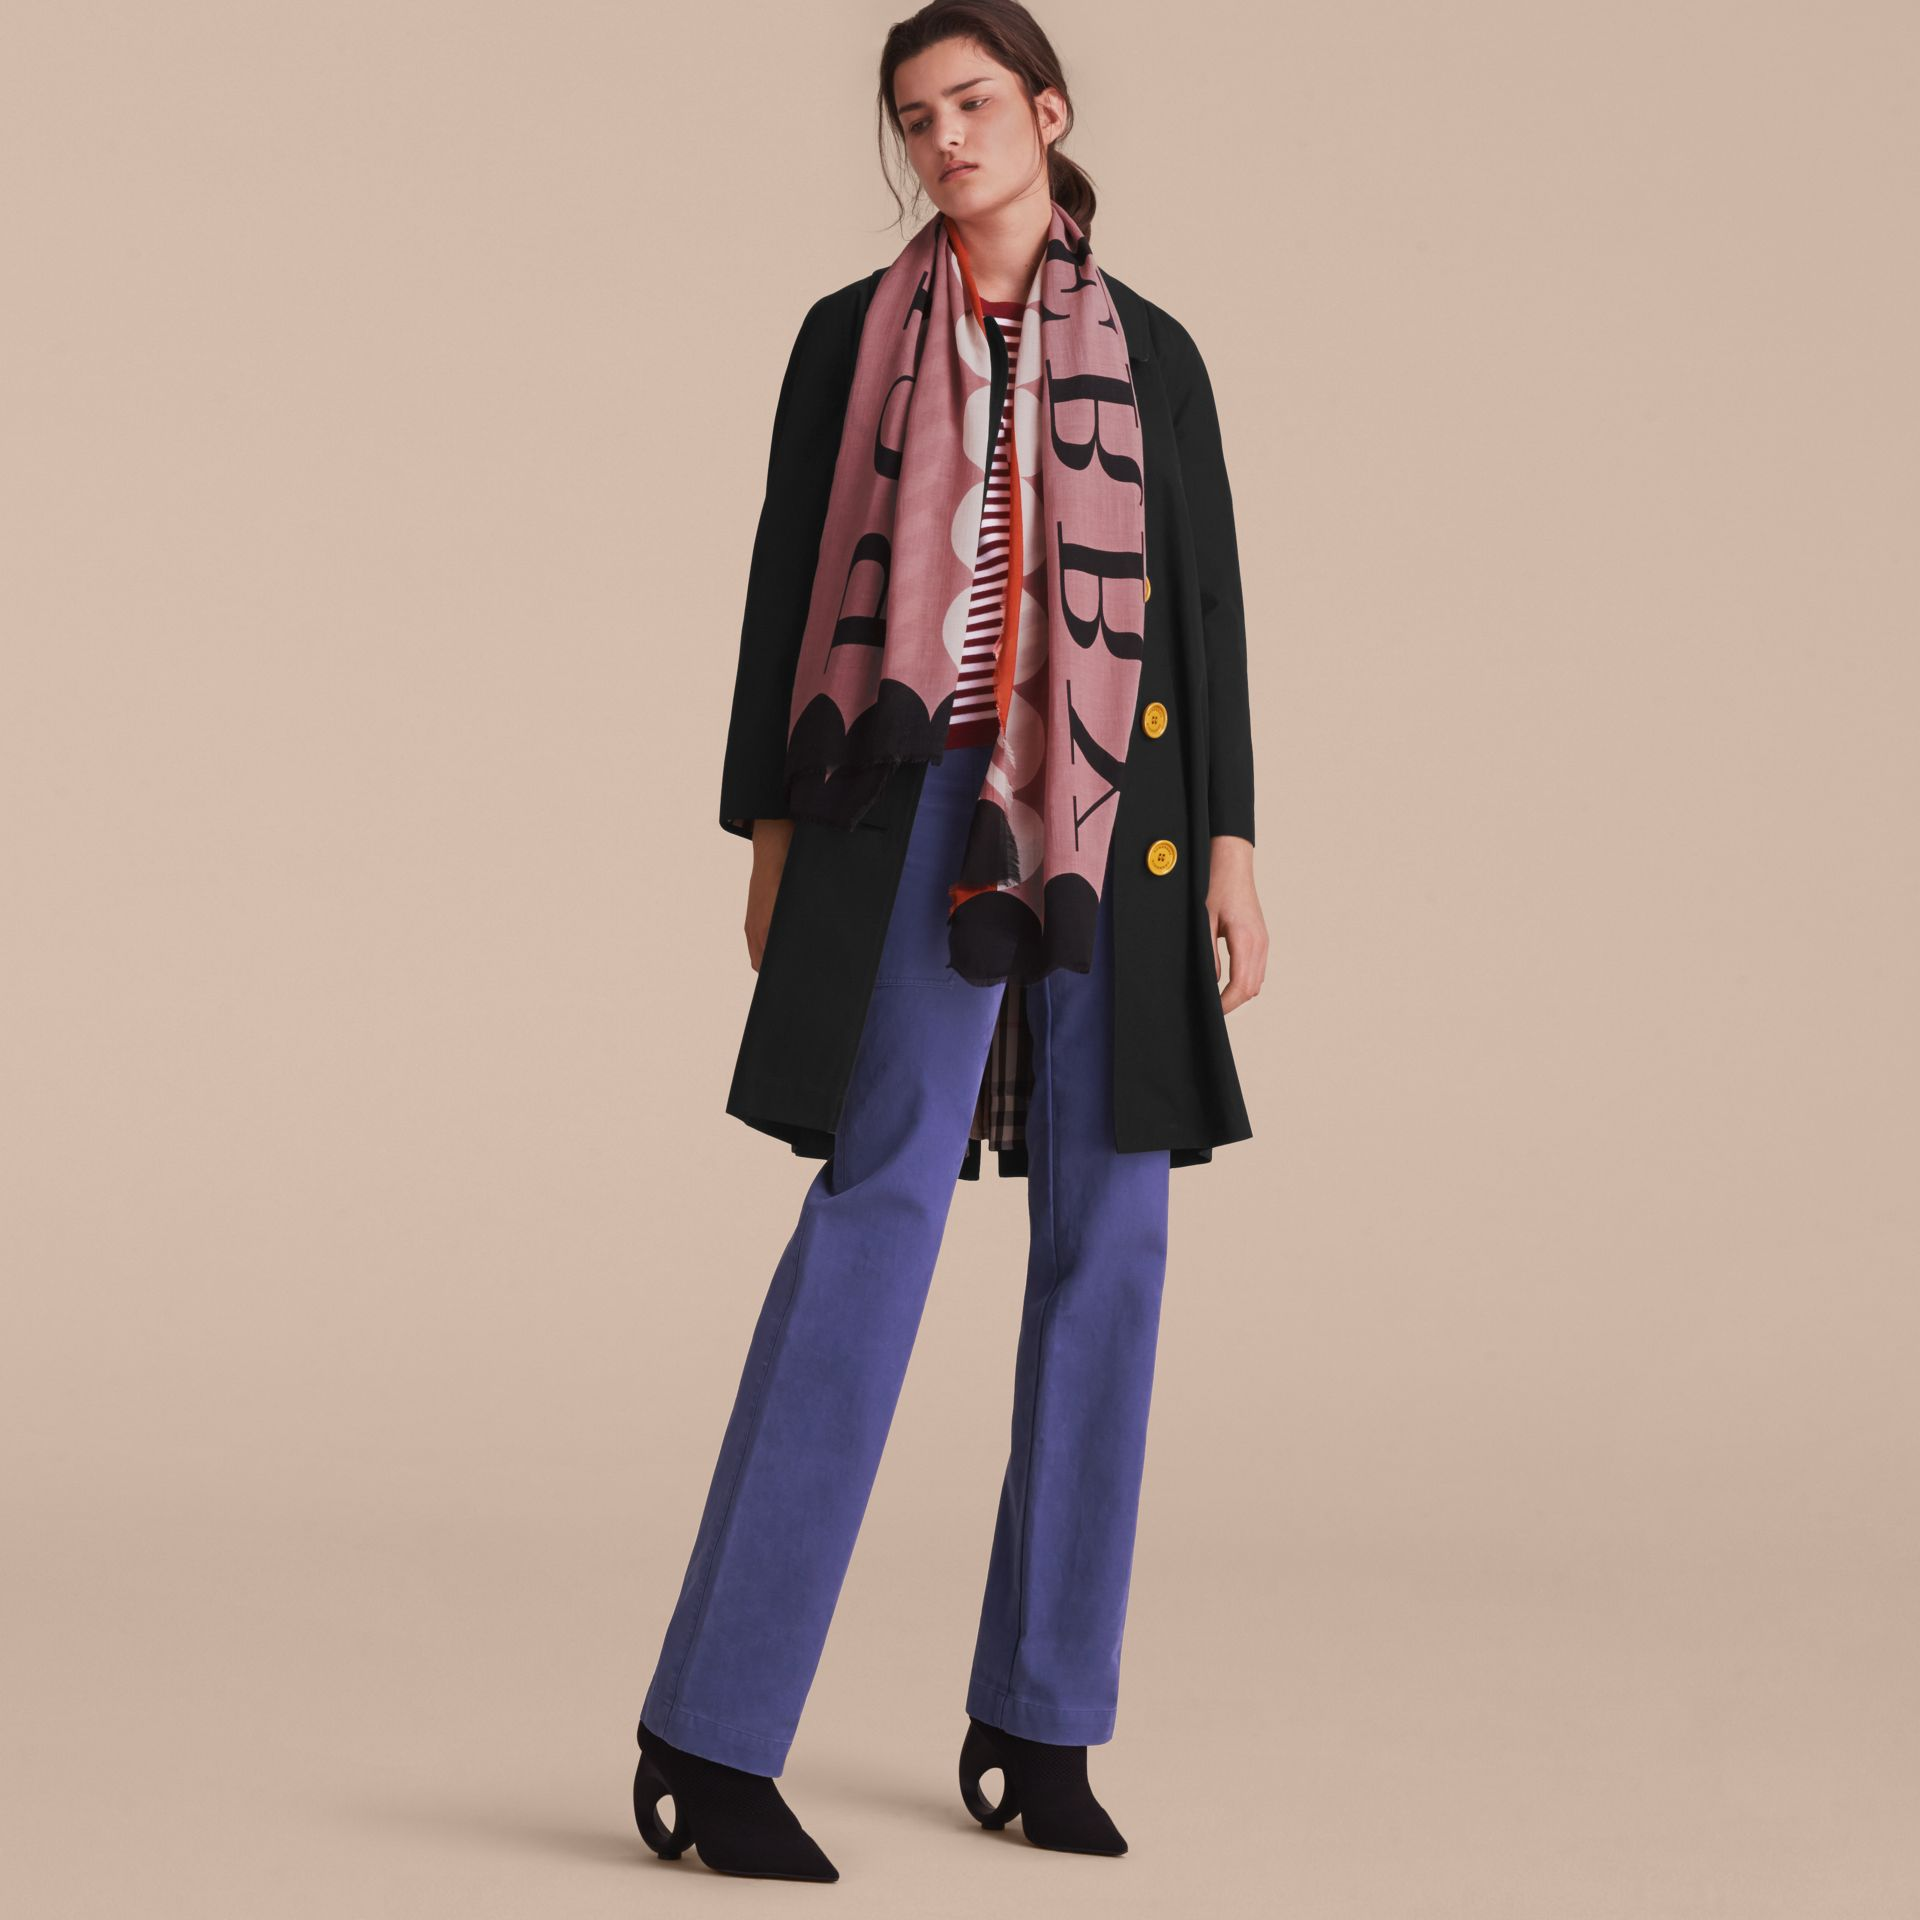 Scallop and Stripe Print Modal Wool Scarf in Dusty Pink - Women | Burberry Australia - gallery image 3